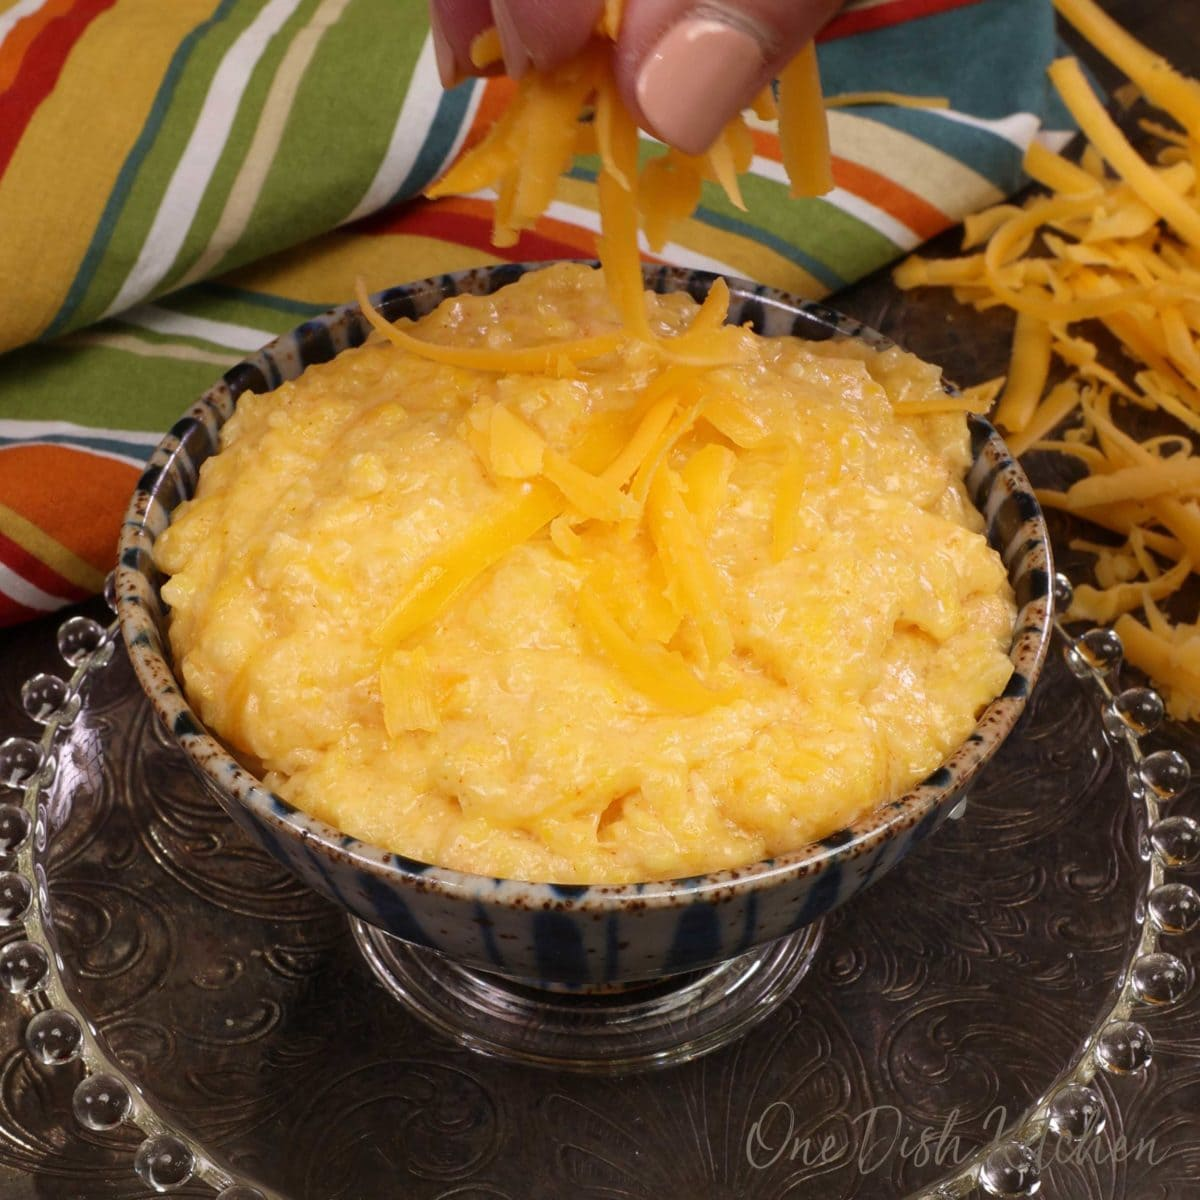 a small blue bowl filled with cheese grits with a hand sprinkling extra cheese over the top.